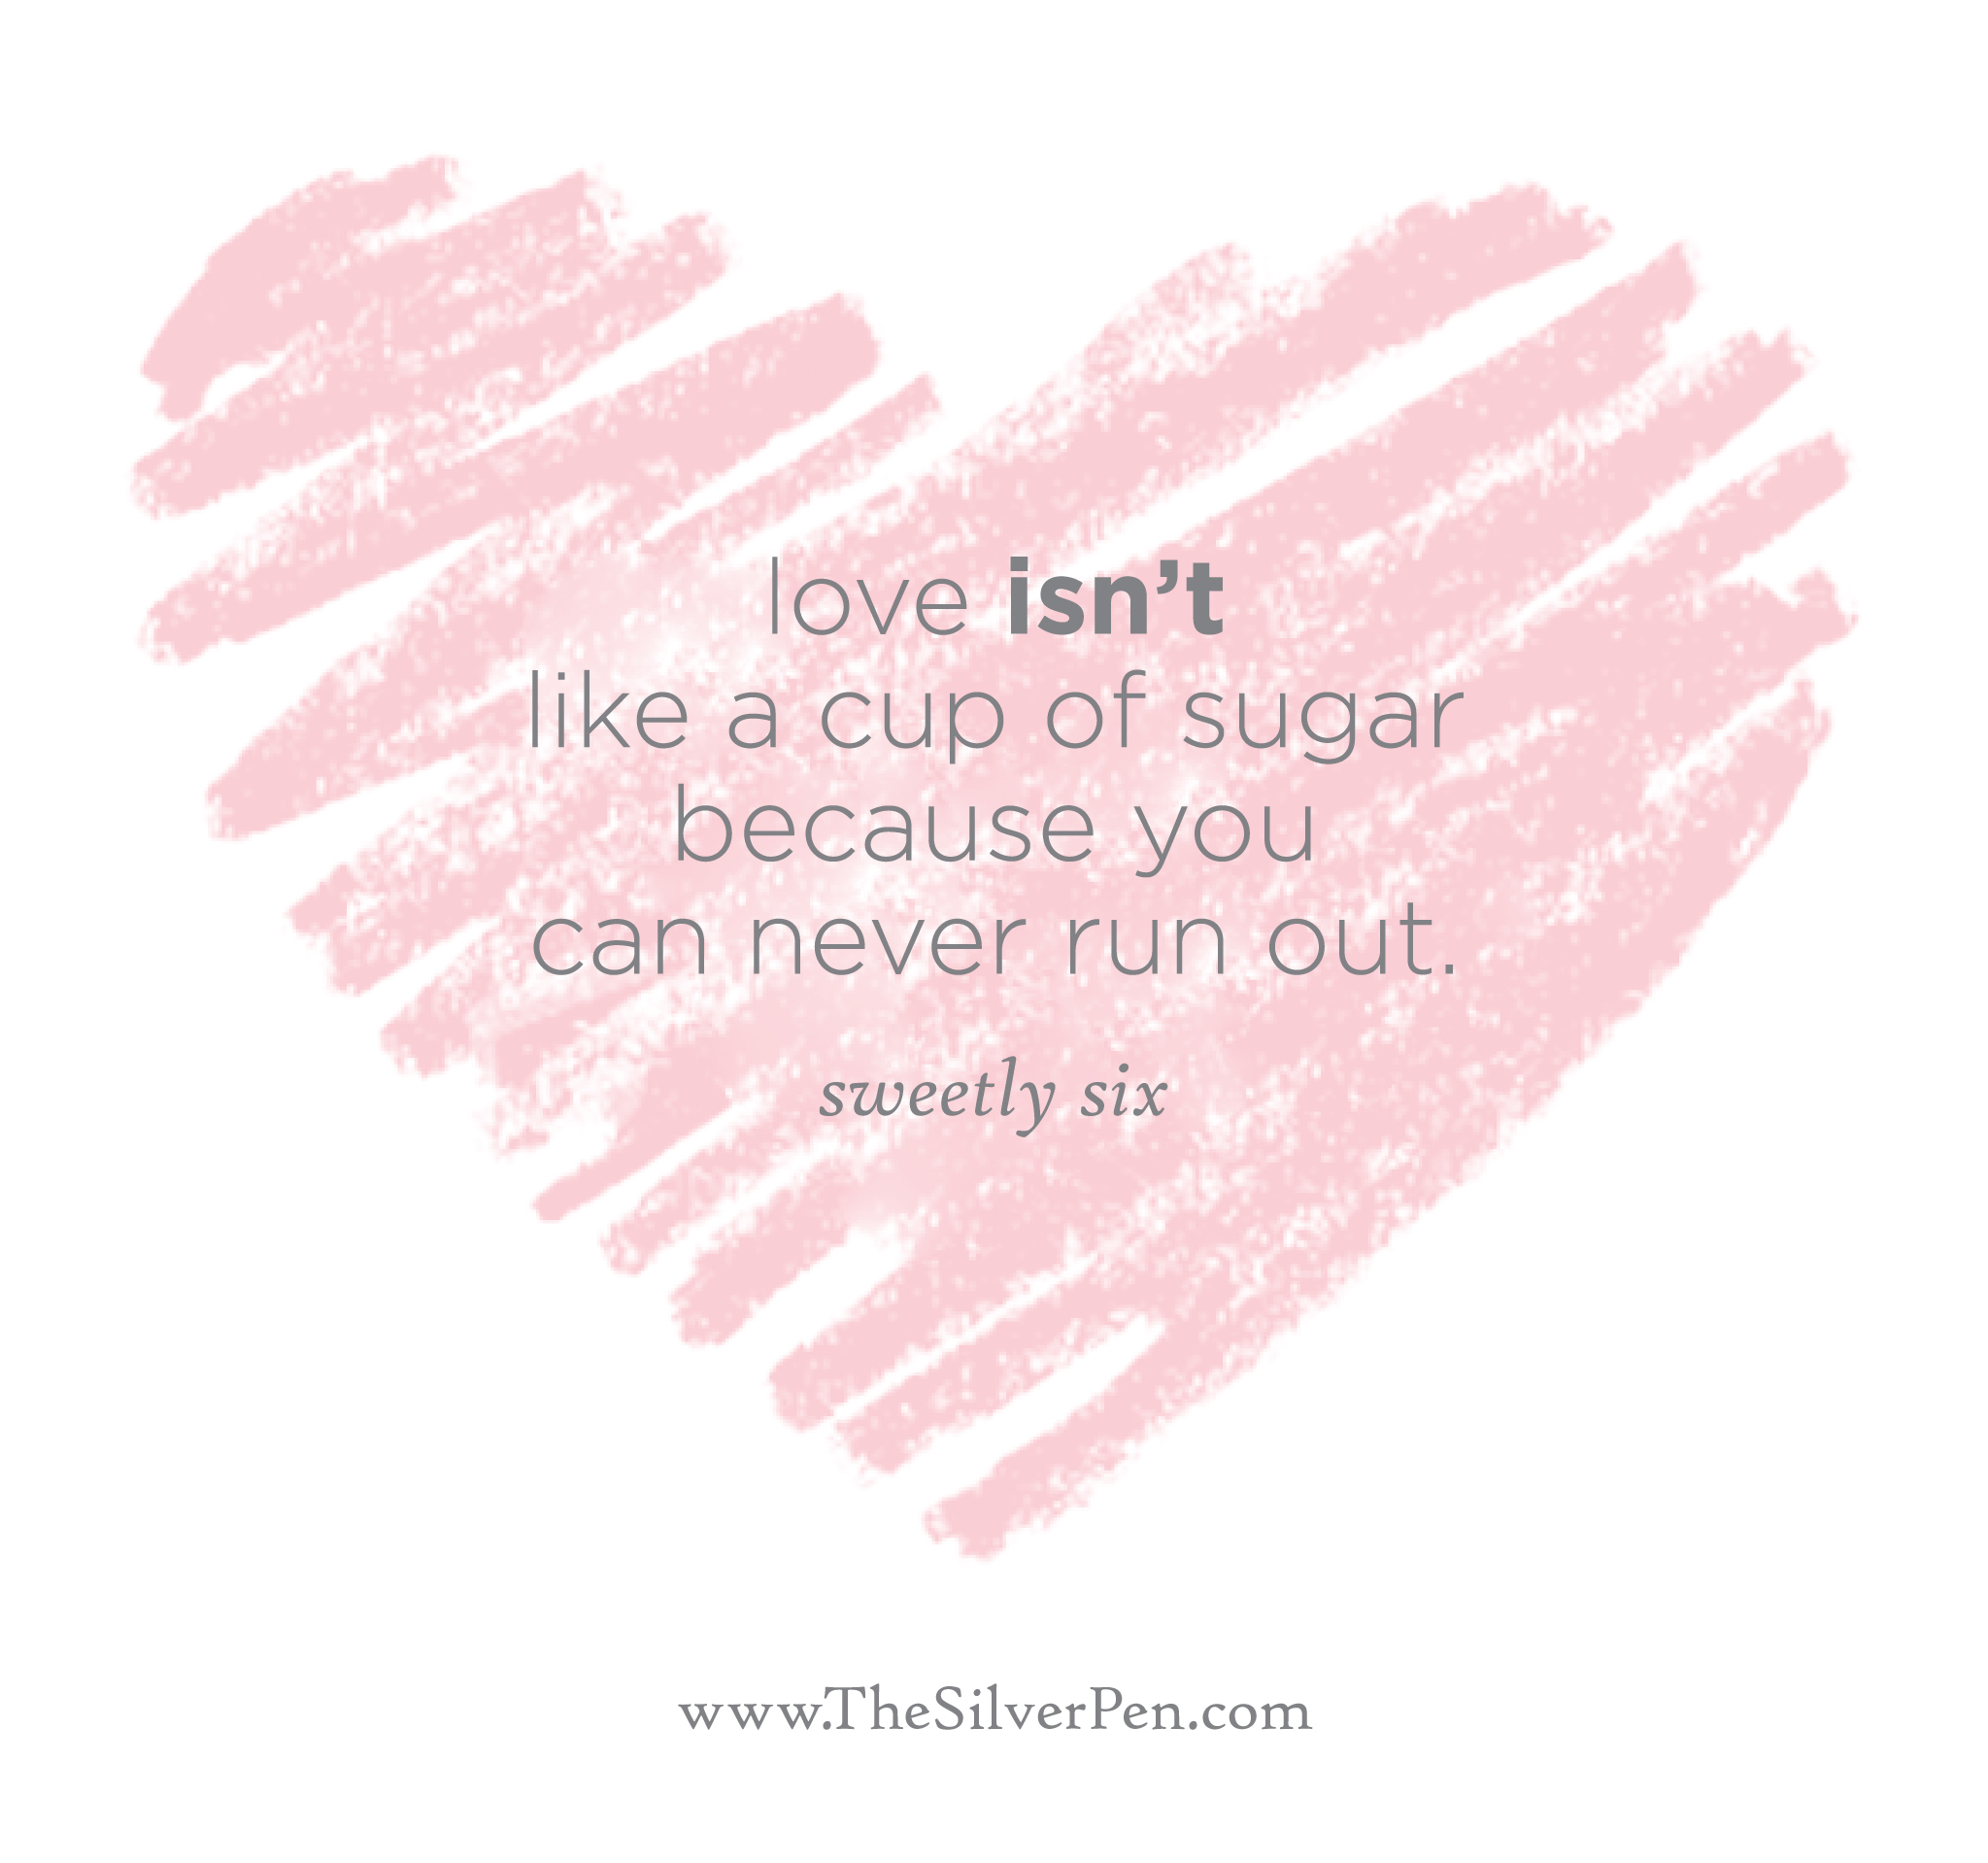 Sweetly quote #2